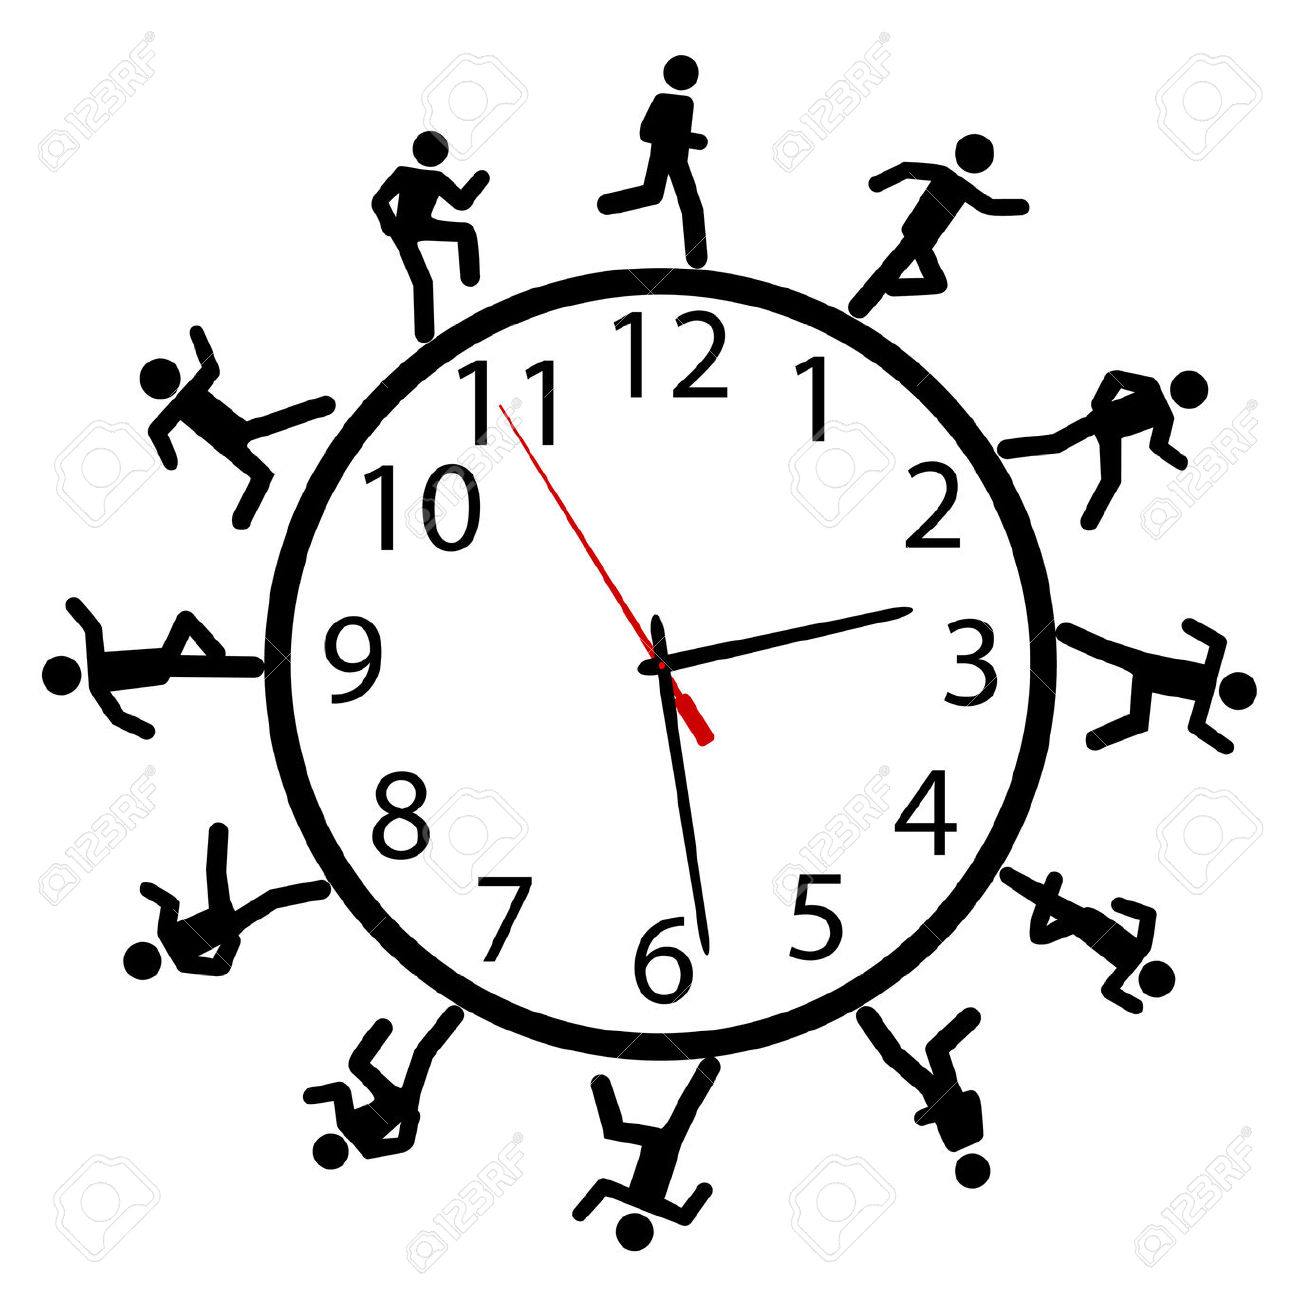 A Symbol Person Or People In A Hurry Run A Work Day Race Around.